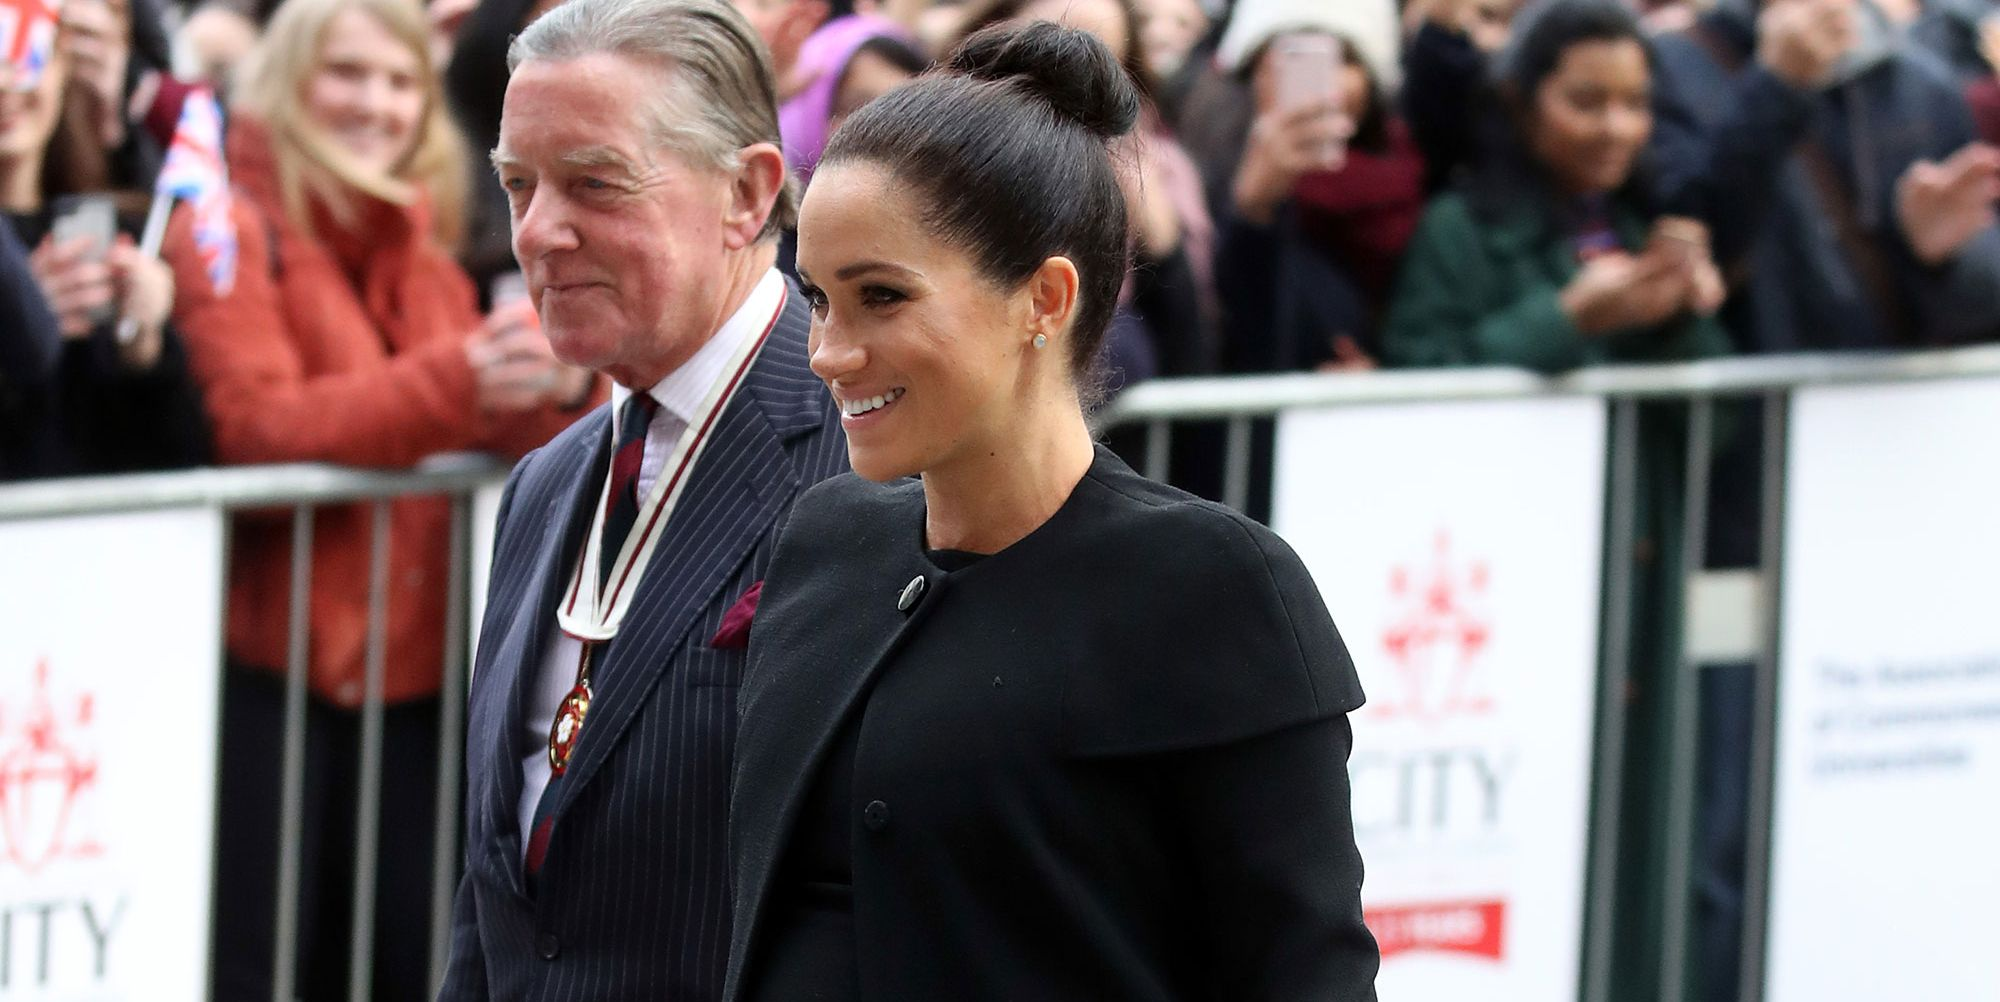 Meghan in Givenchy